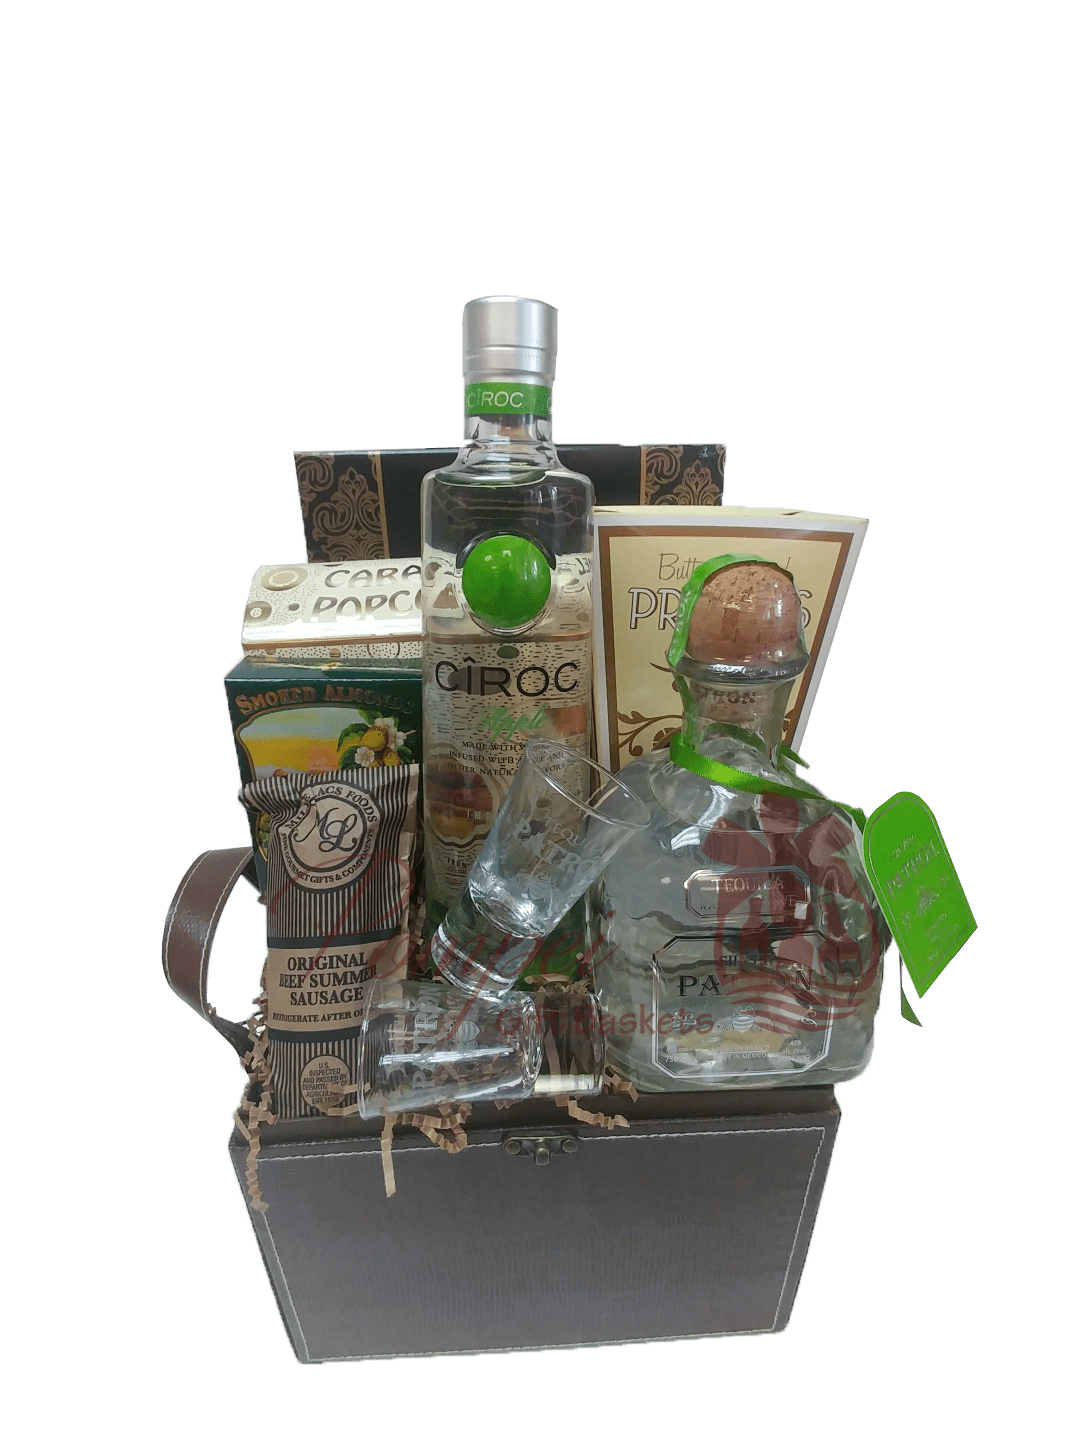 Give Me the Green Light Liquor Gift Basket, Liquor Gift Basket, Patron Gift Basket